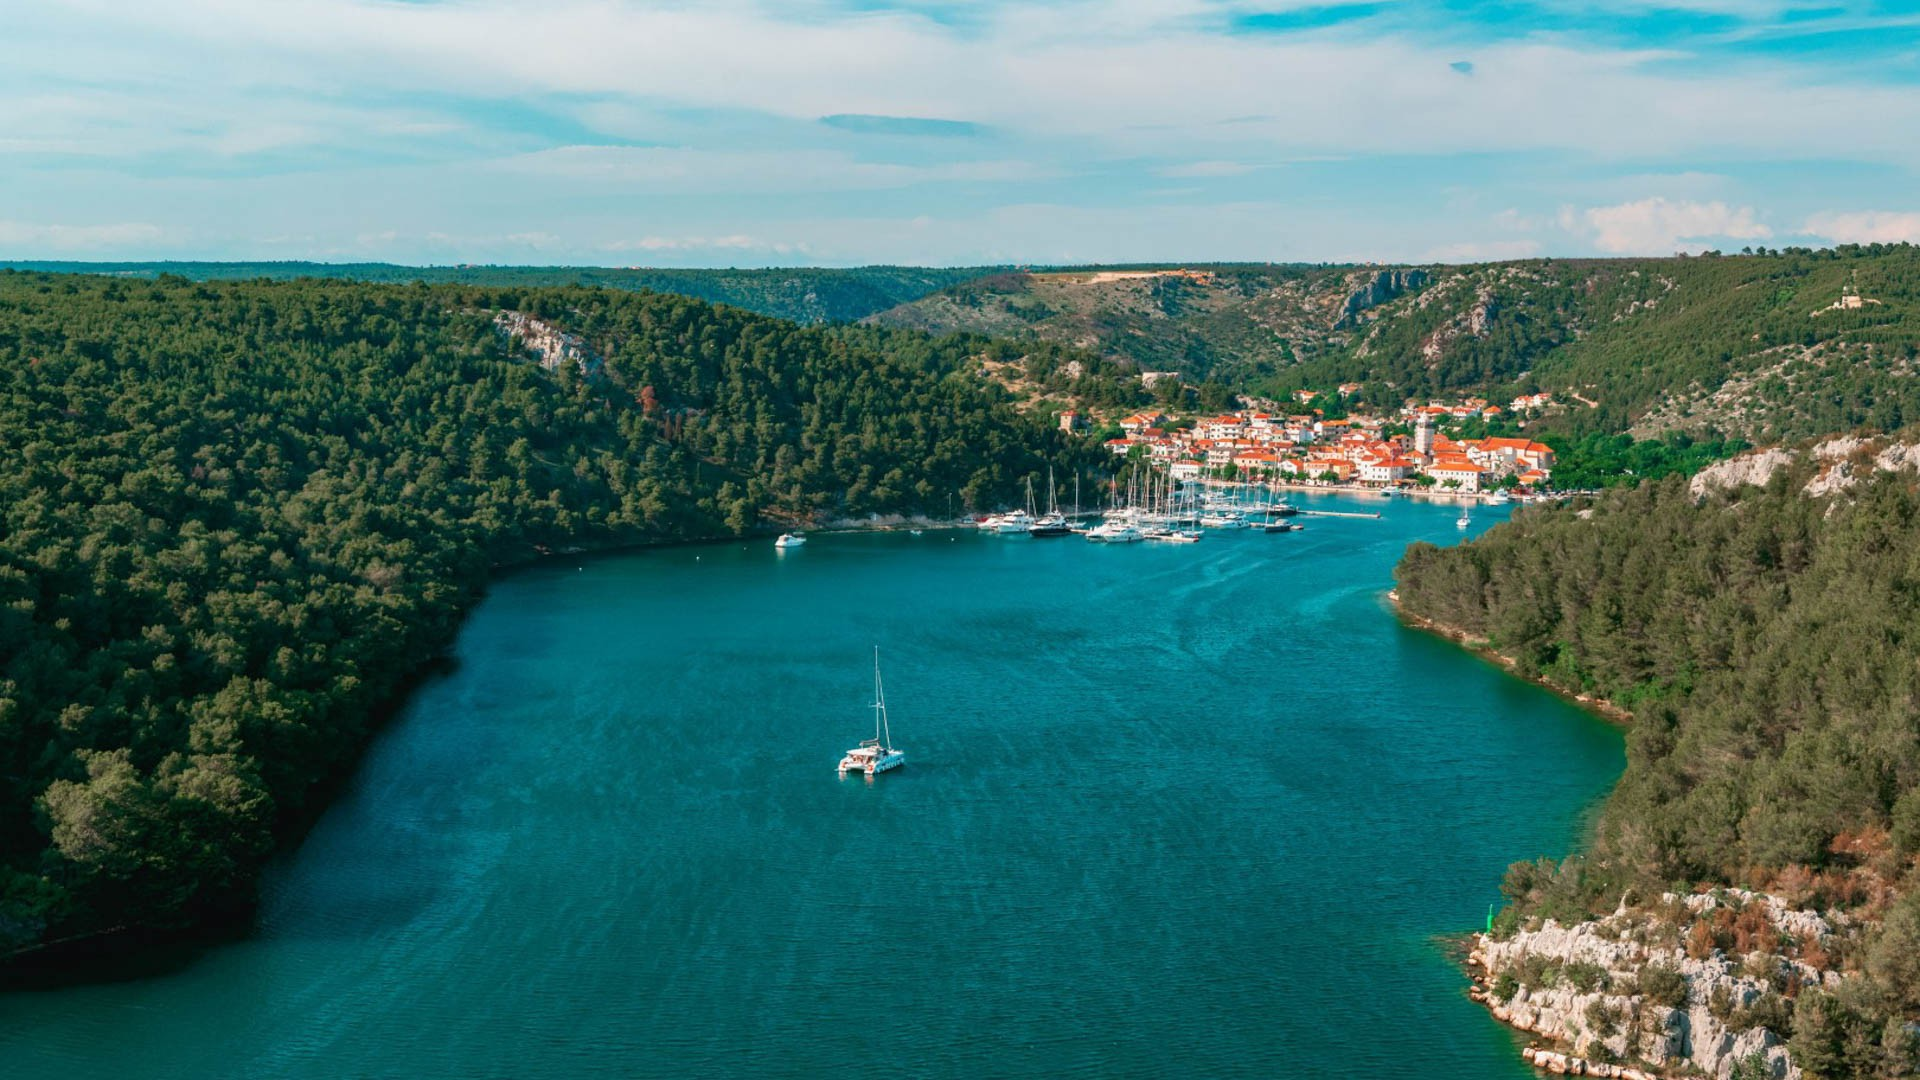 Skradin - Adriatic Sea | Croatia Cruise Croatia Cruise